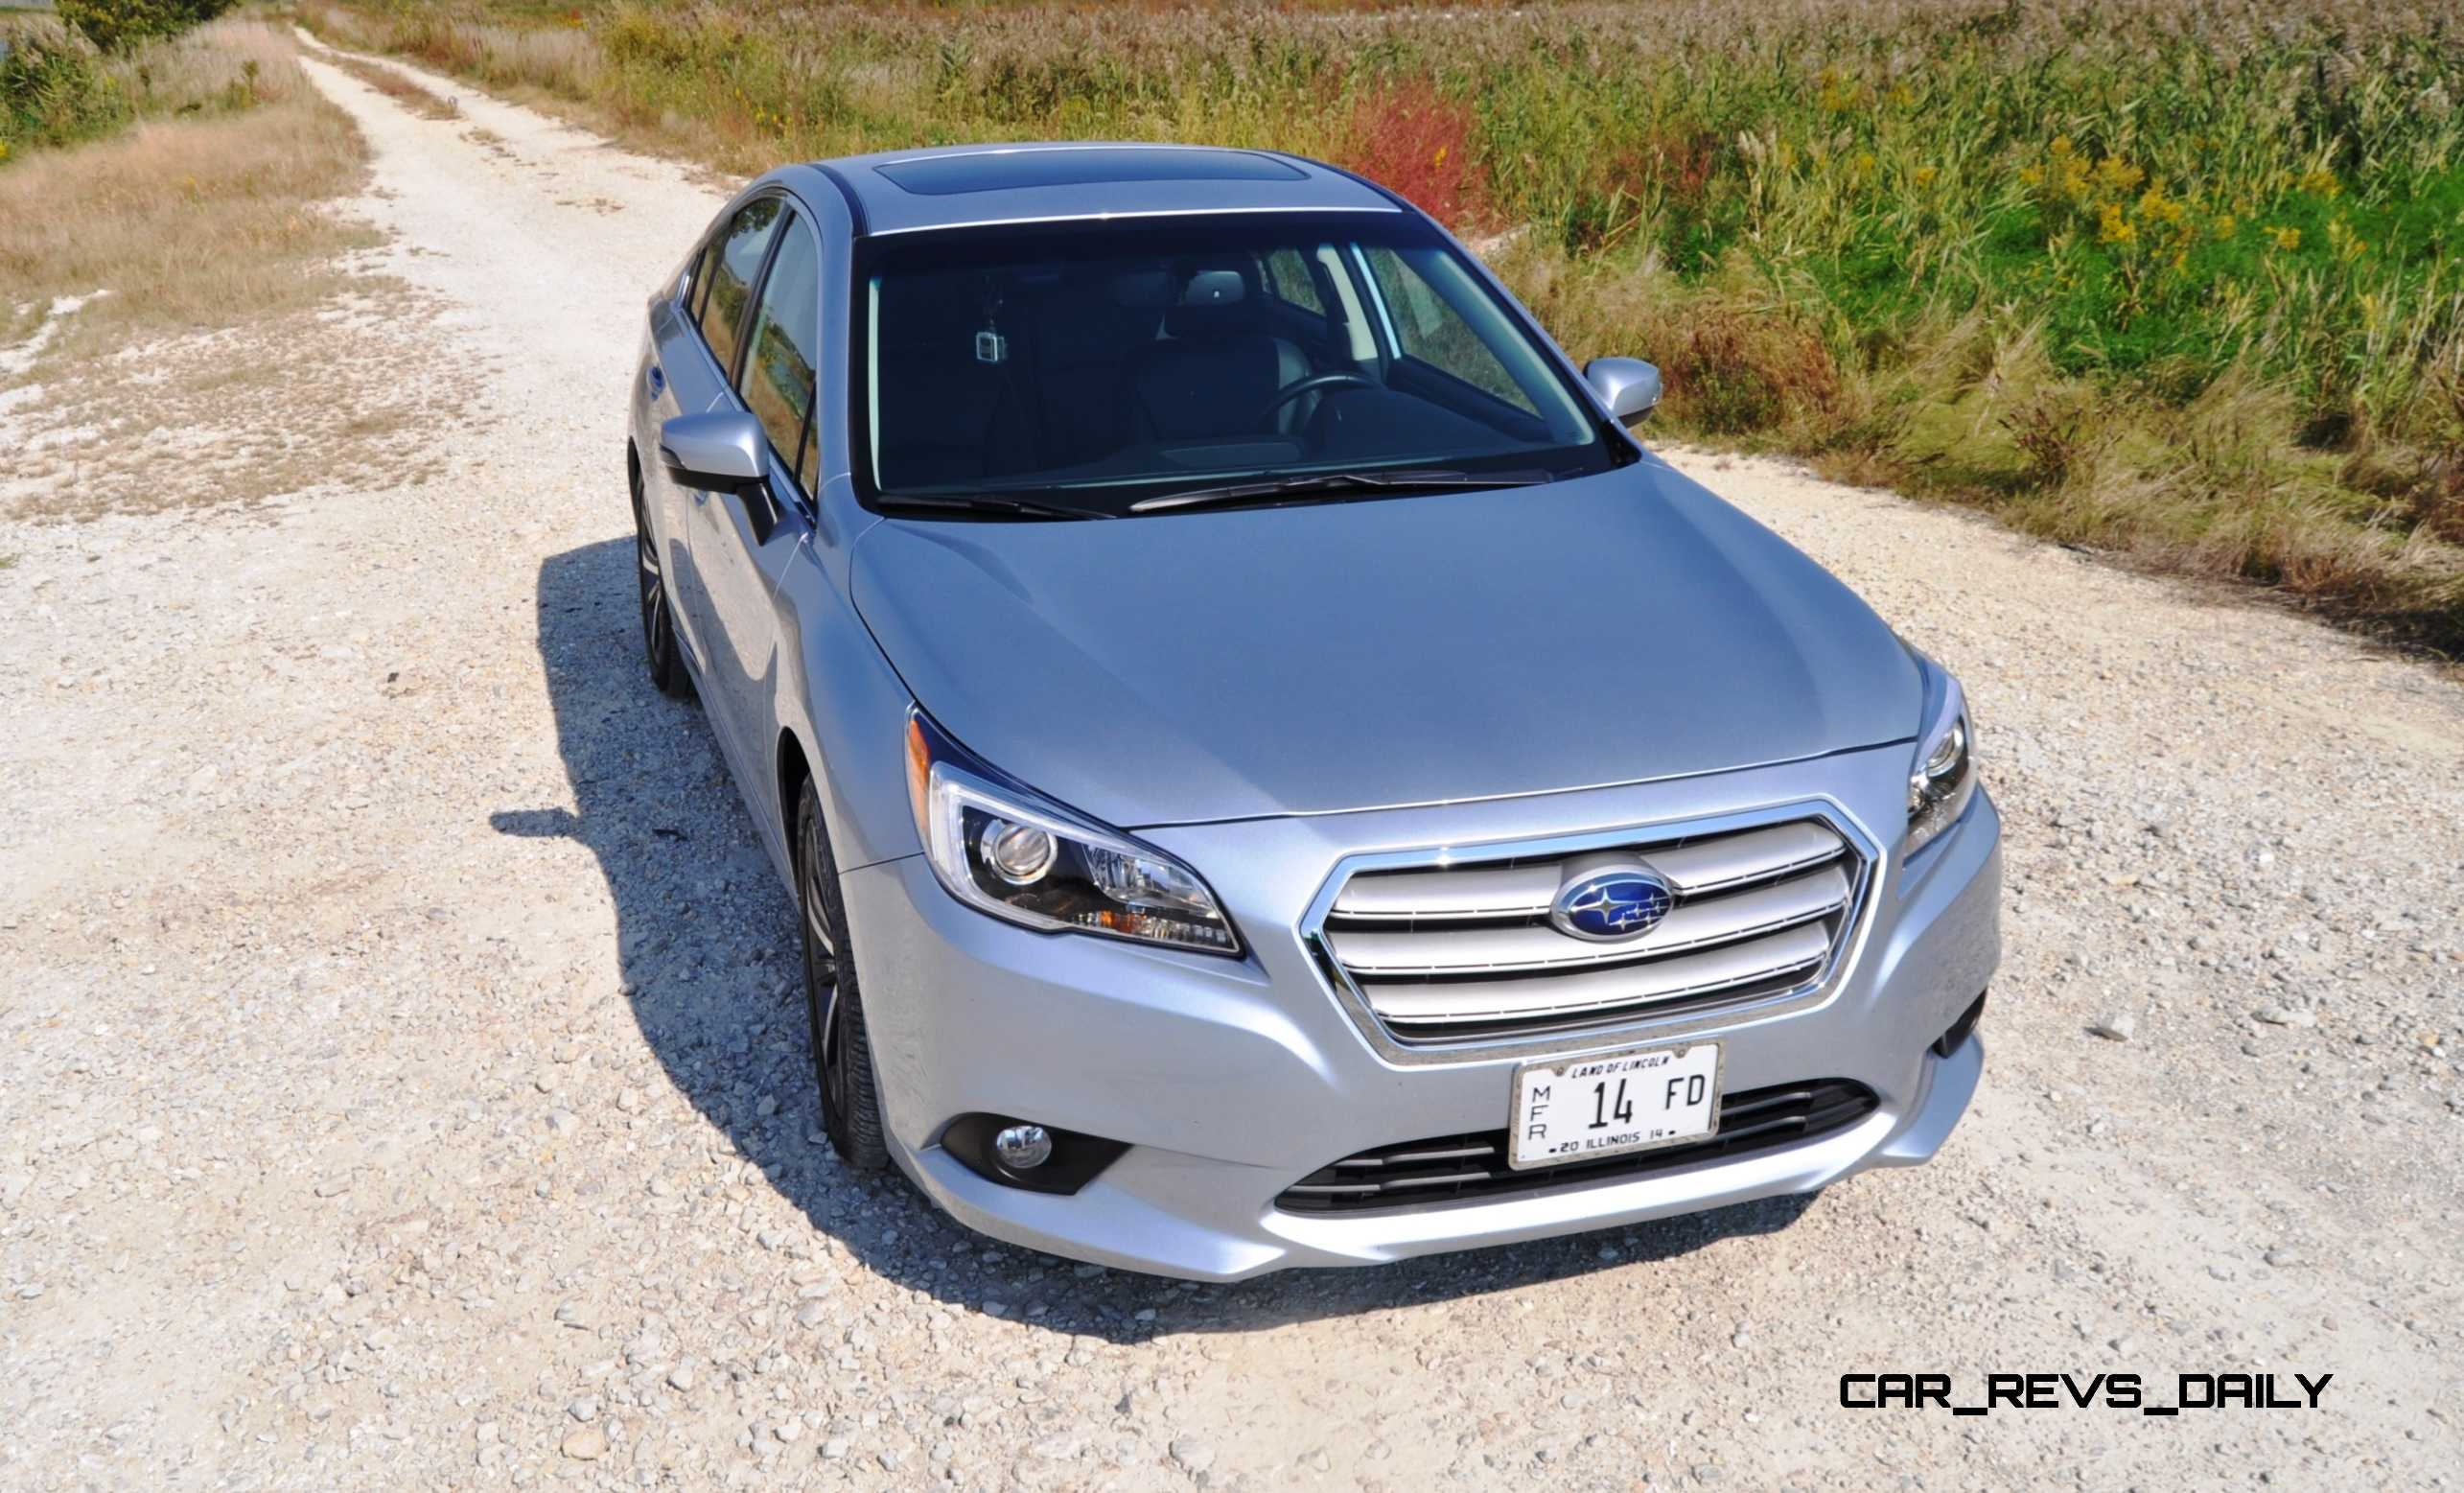 2017 subaru legacy sport hd road test review car revs. Black Bedroom Furniture Sets. Home Design Ideas